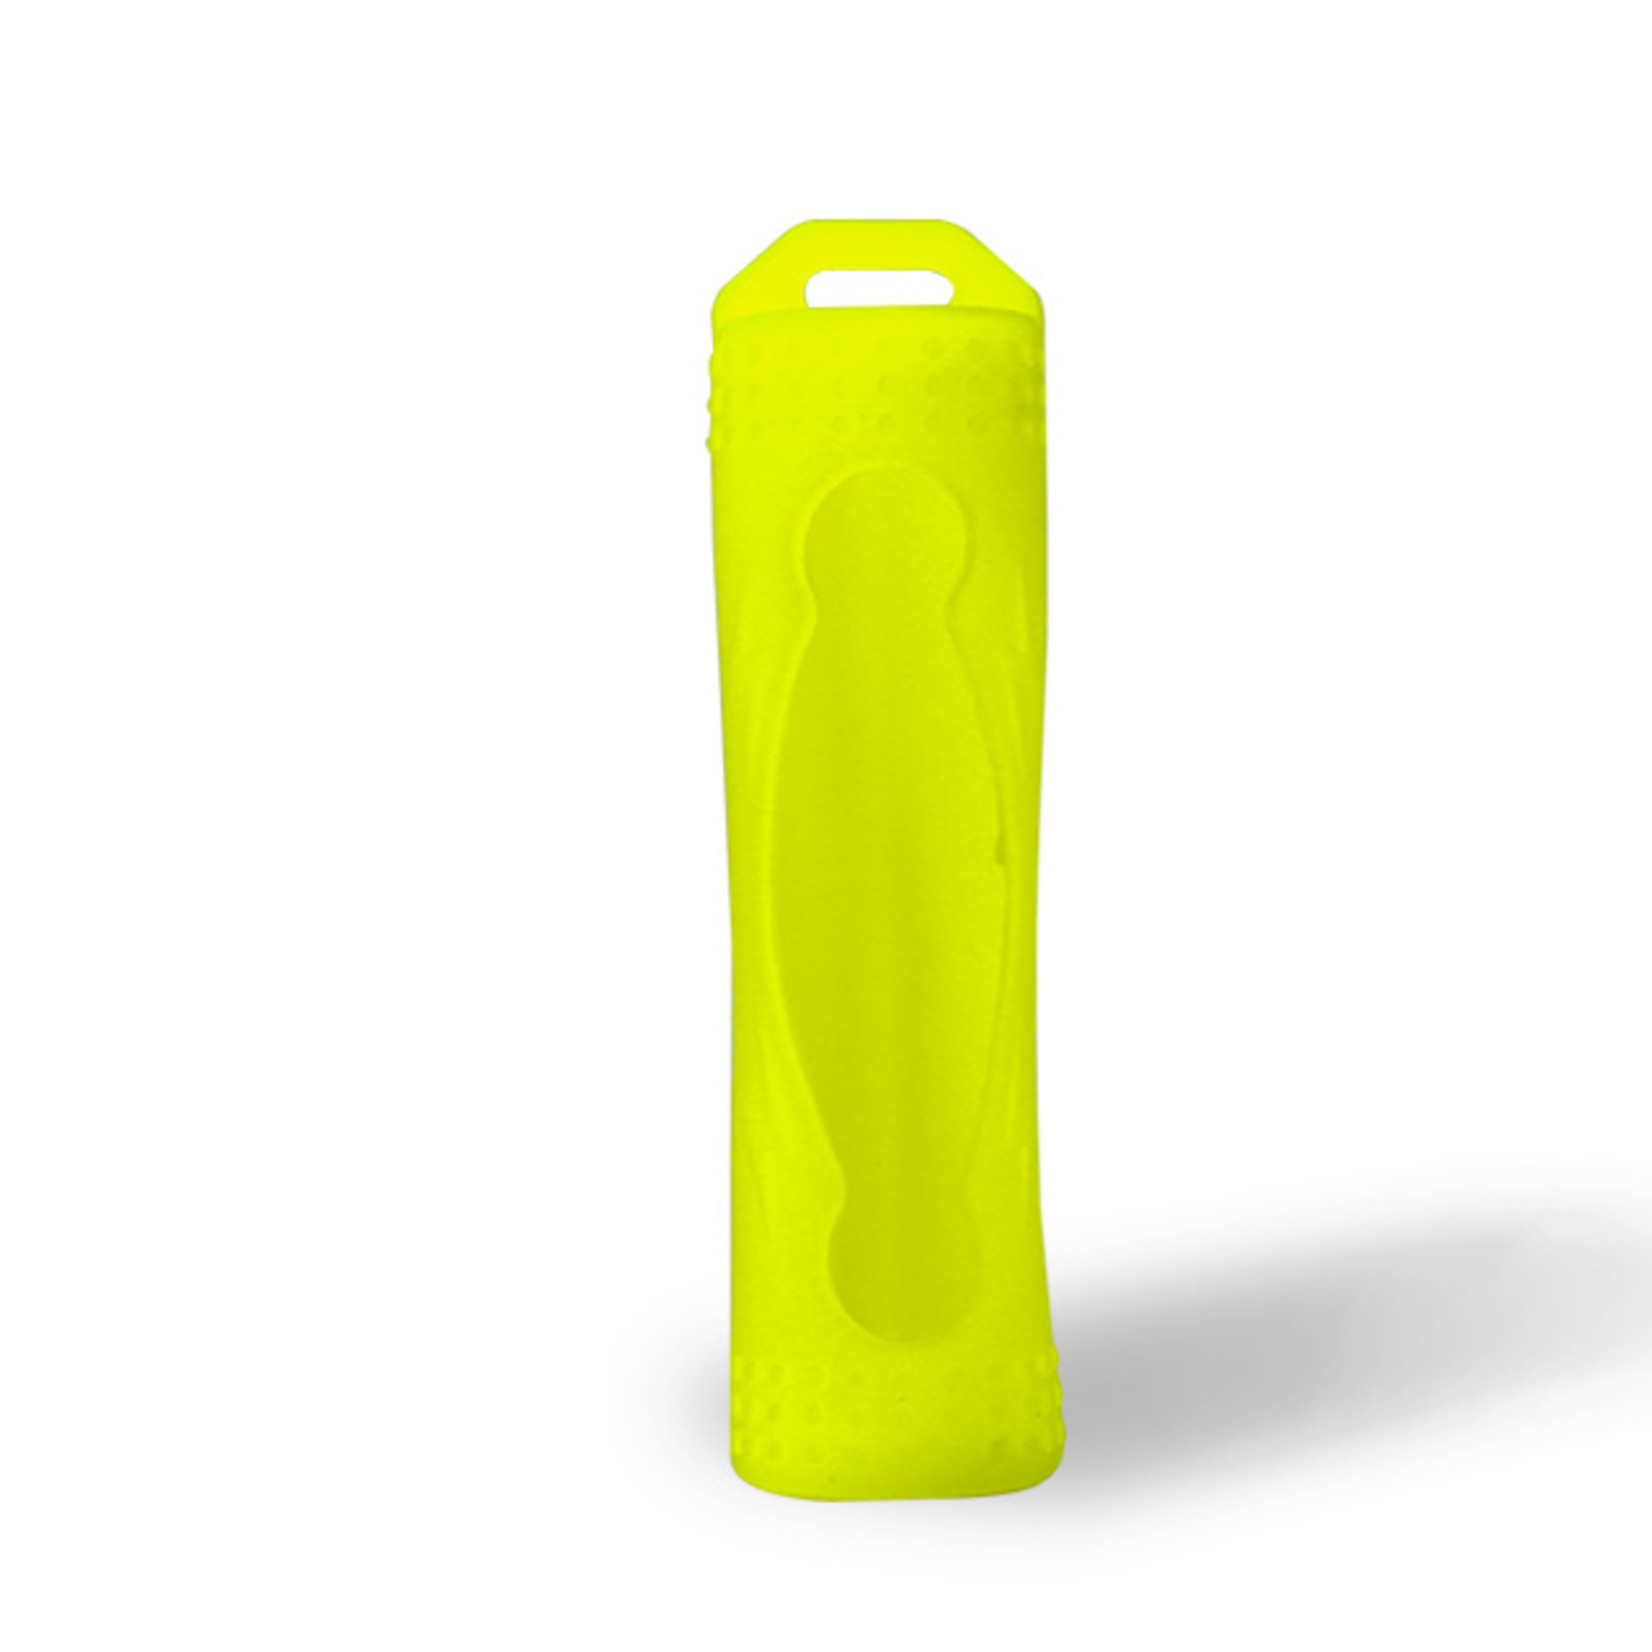 20700 / 21700 Single Battery Silicone Protective Sleeve